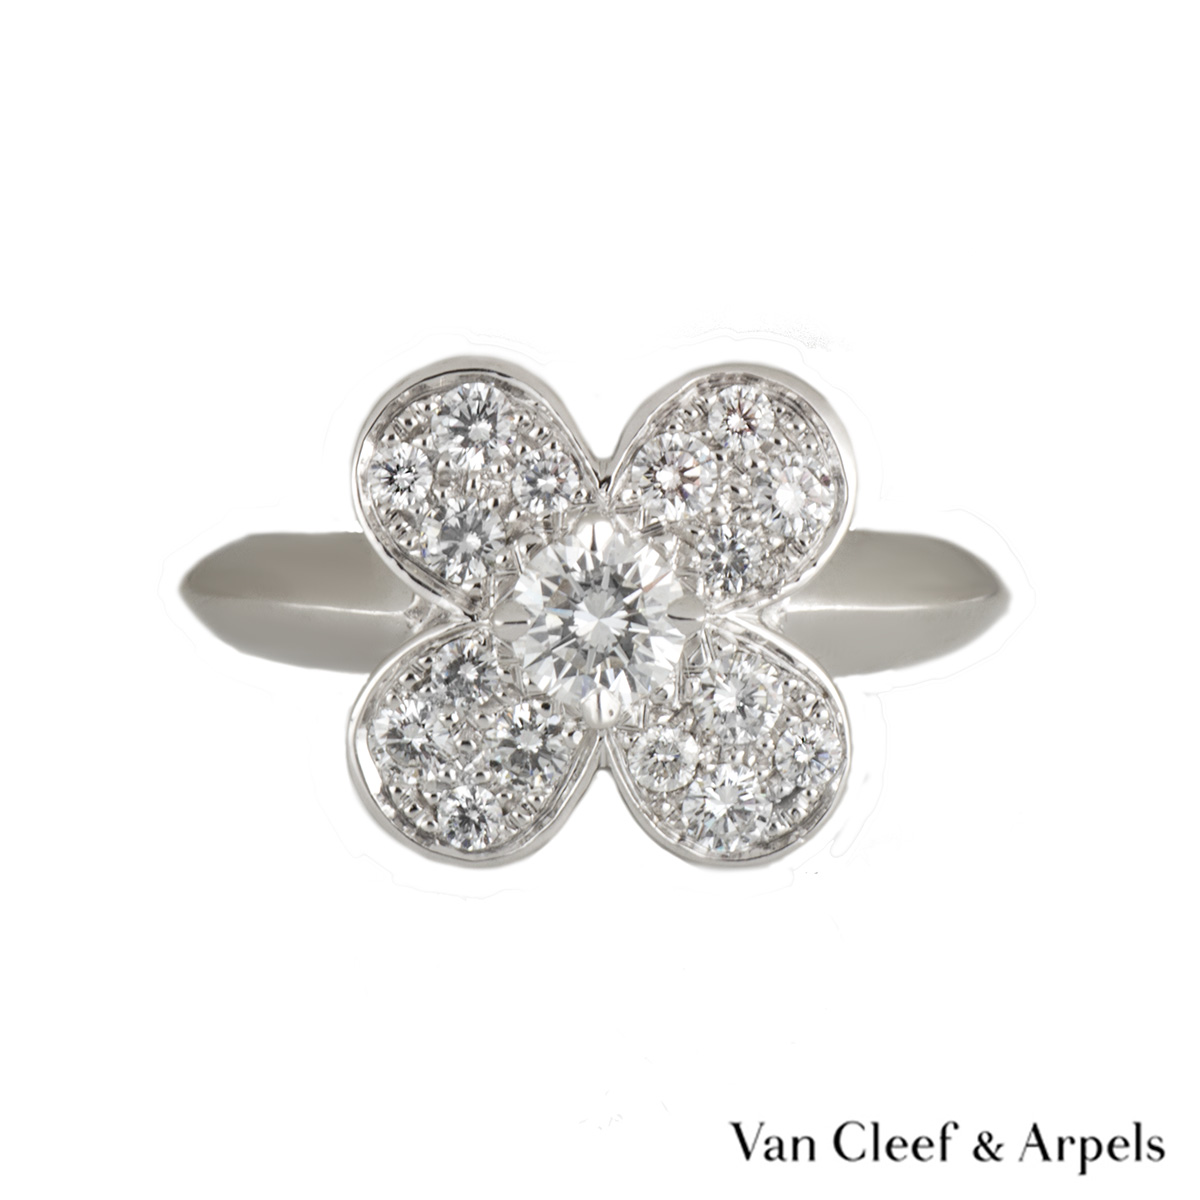 Van Cleef & Arpels 18k White Gold Diamond Set Alhambra Ring Size 49